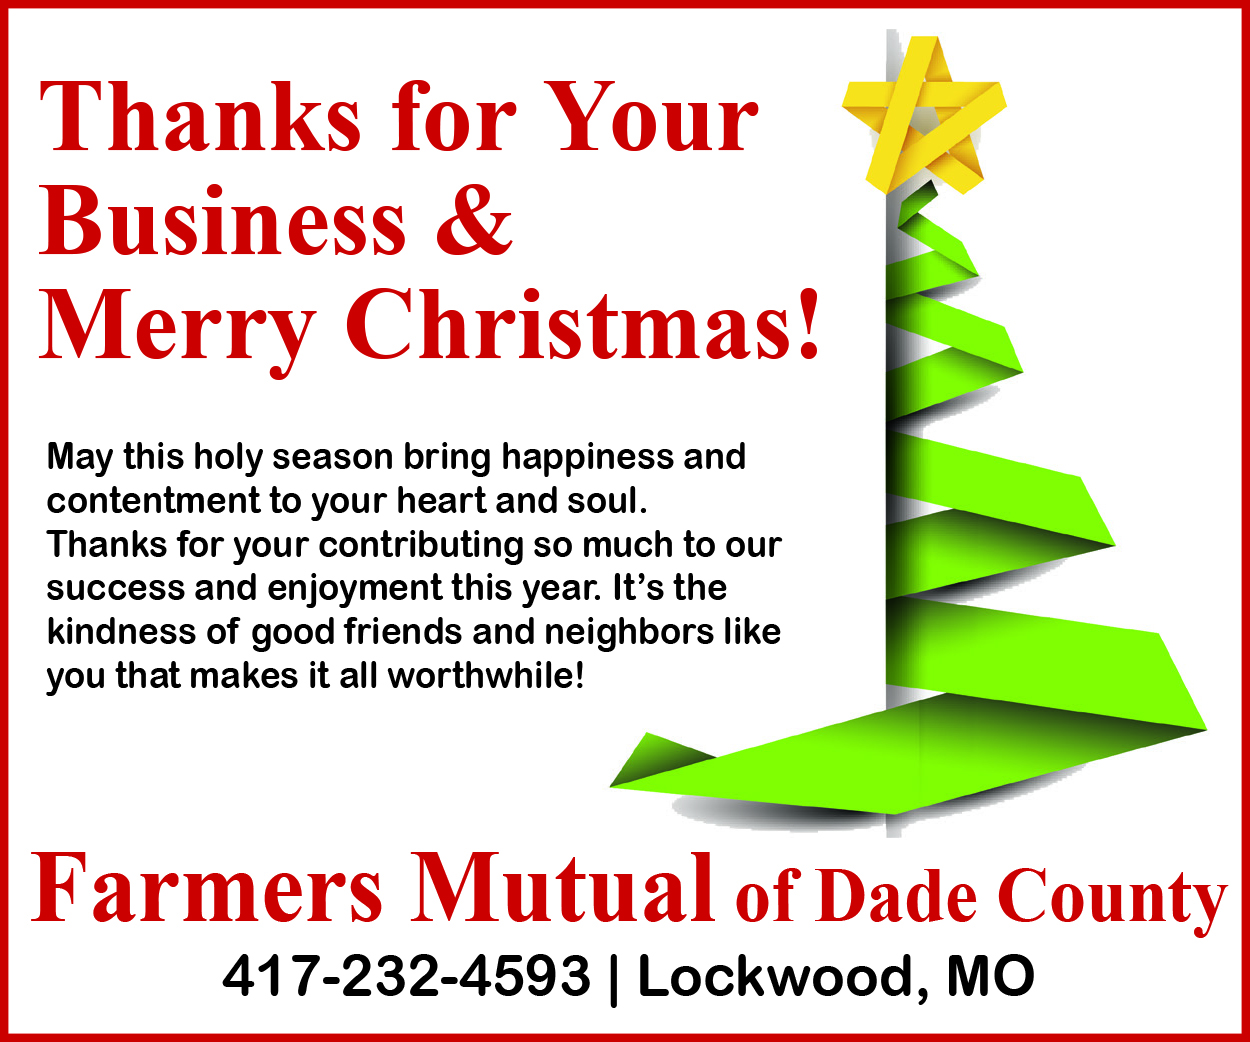 Farmers Mutual Christmas Greetings 2019